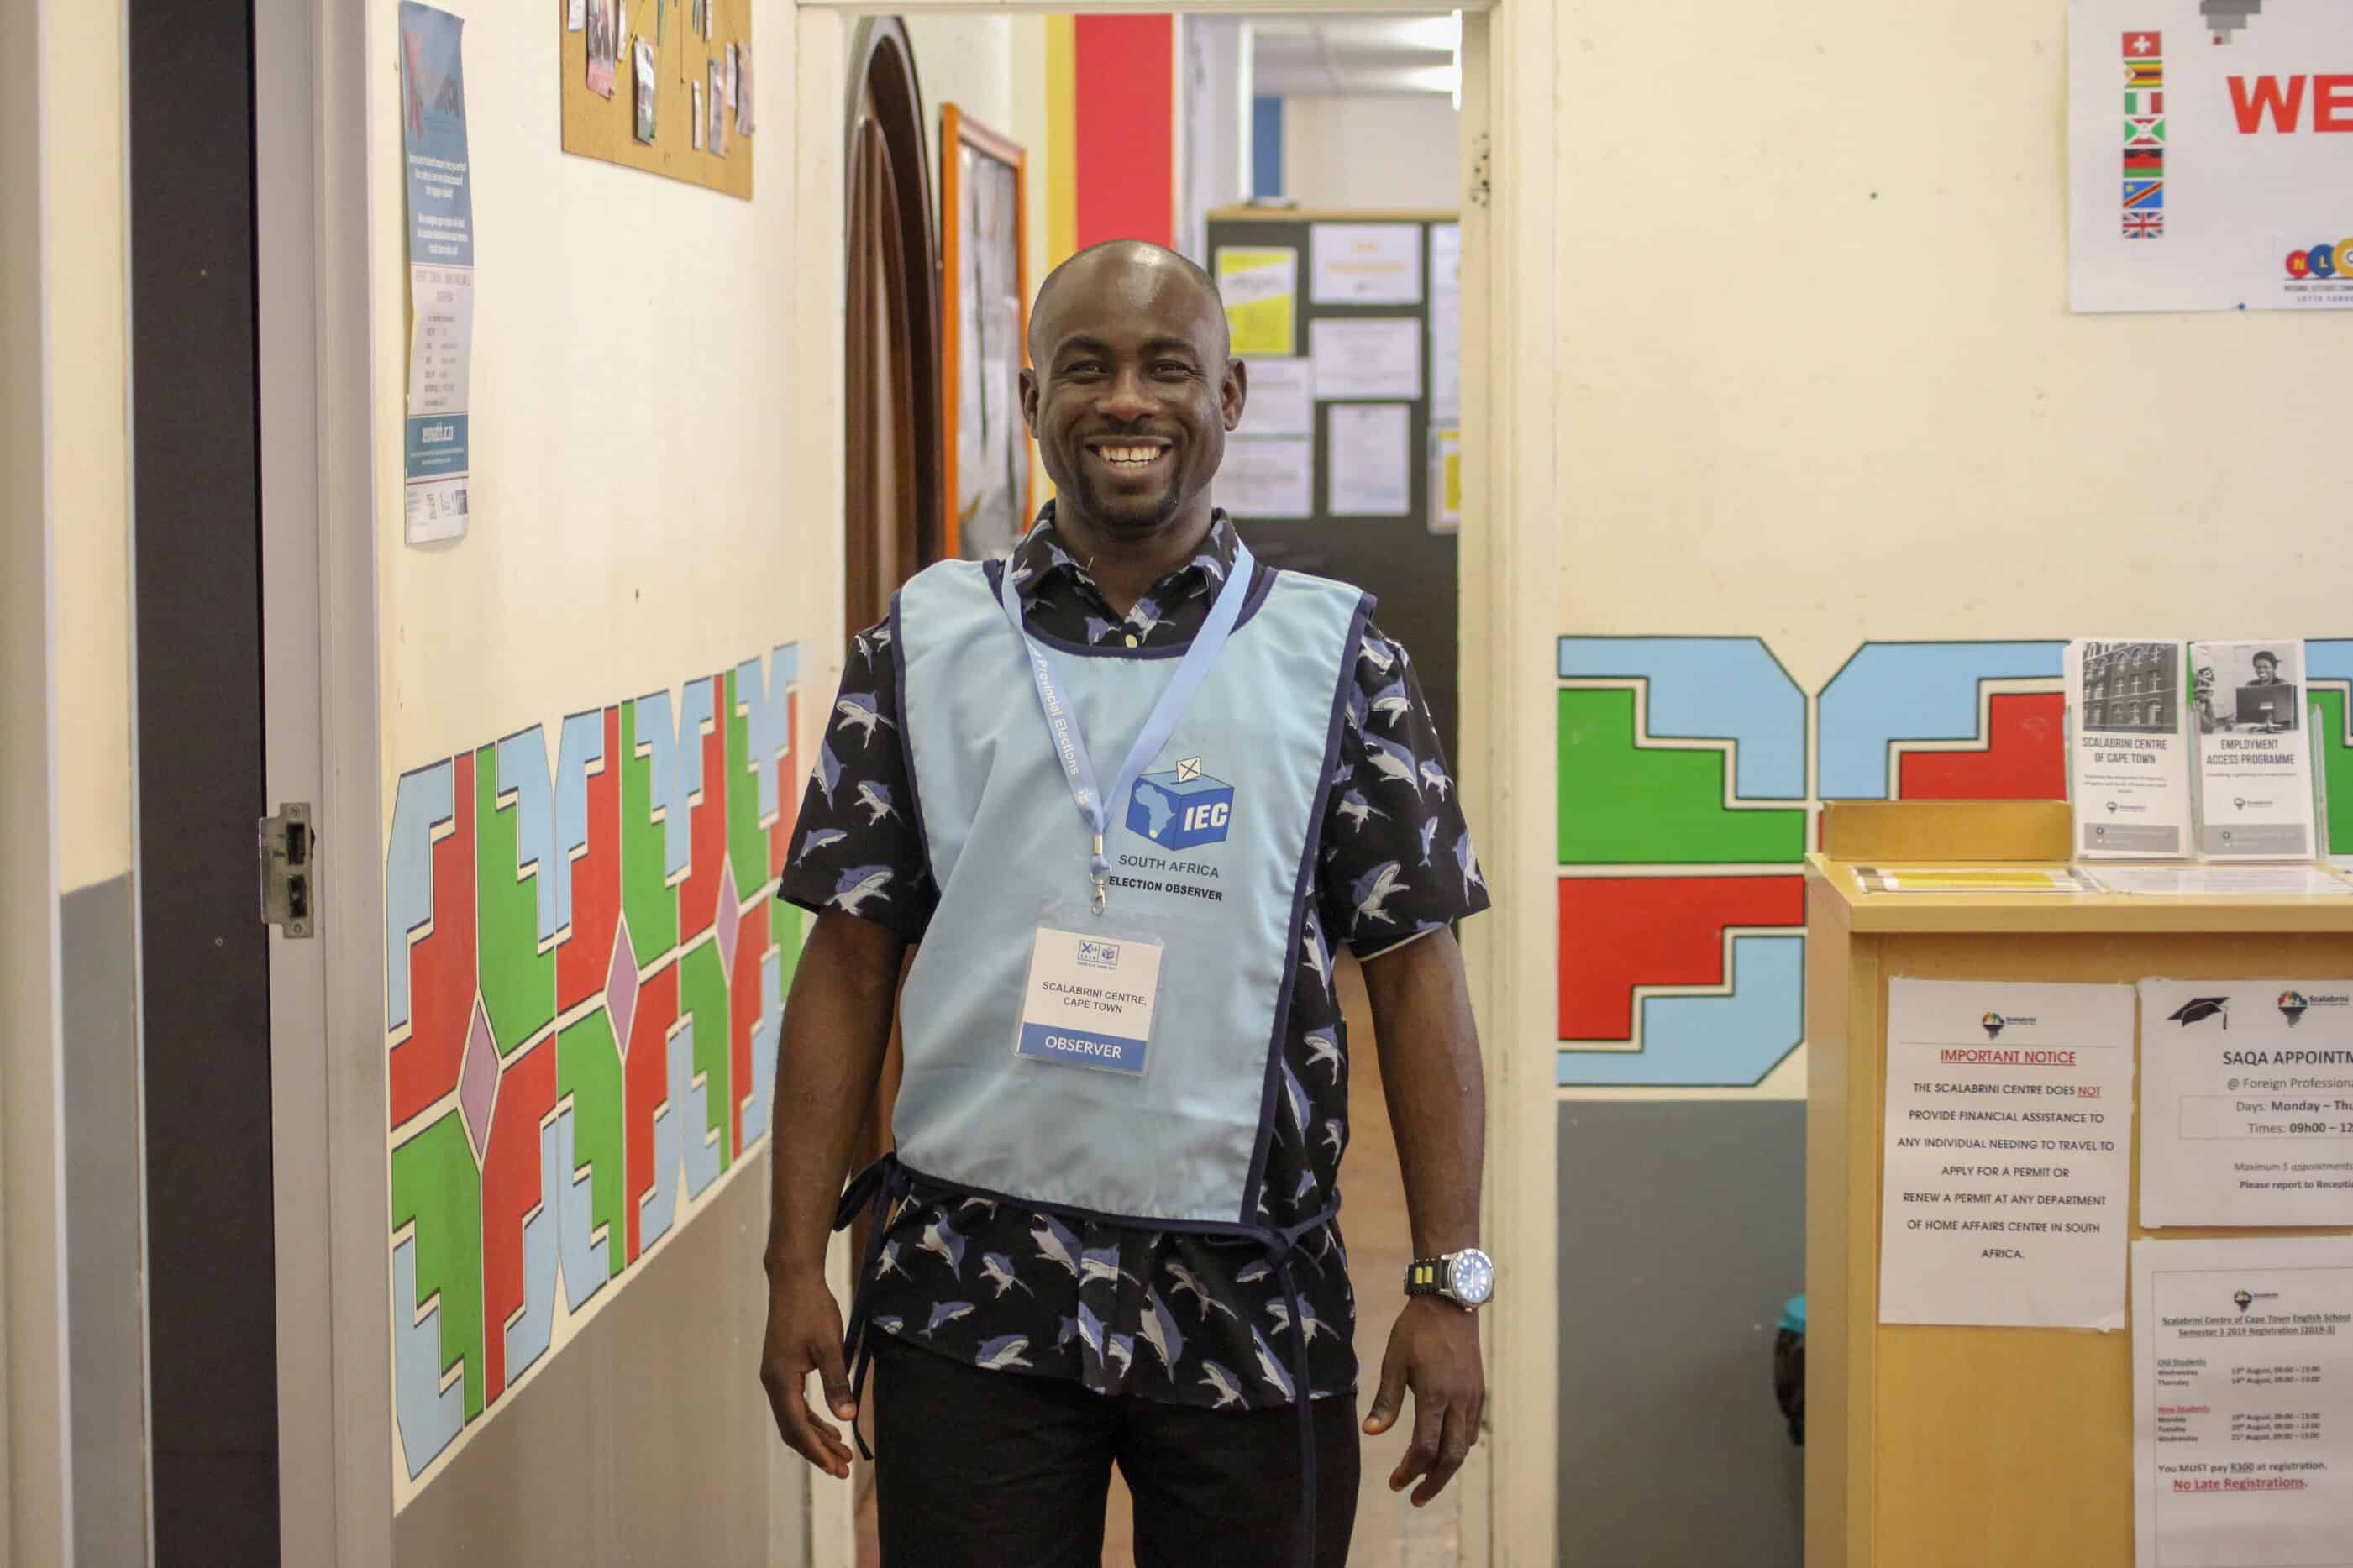 7 May 2019: Christian Oluchi Achogbuo from Nigeria has lived in South Africa for 13 years. He said its democracy is not perfect, but more accountable and transparent in a way that eludes most African countries. (Photograph courtesy of The Scalabrini Centre of Cape Town)